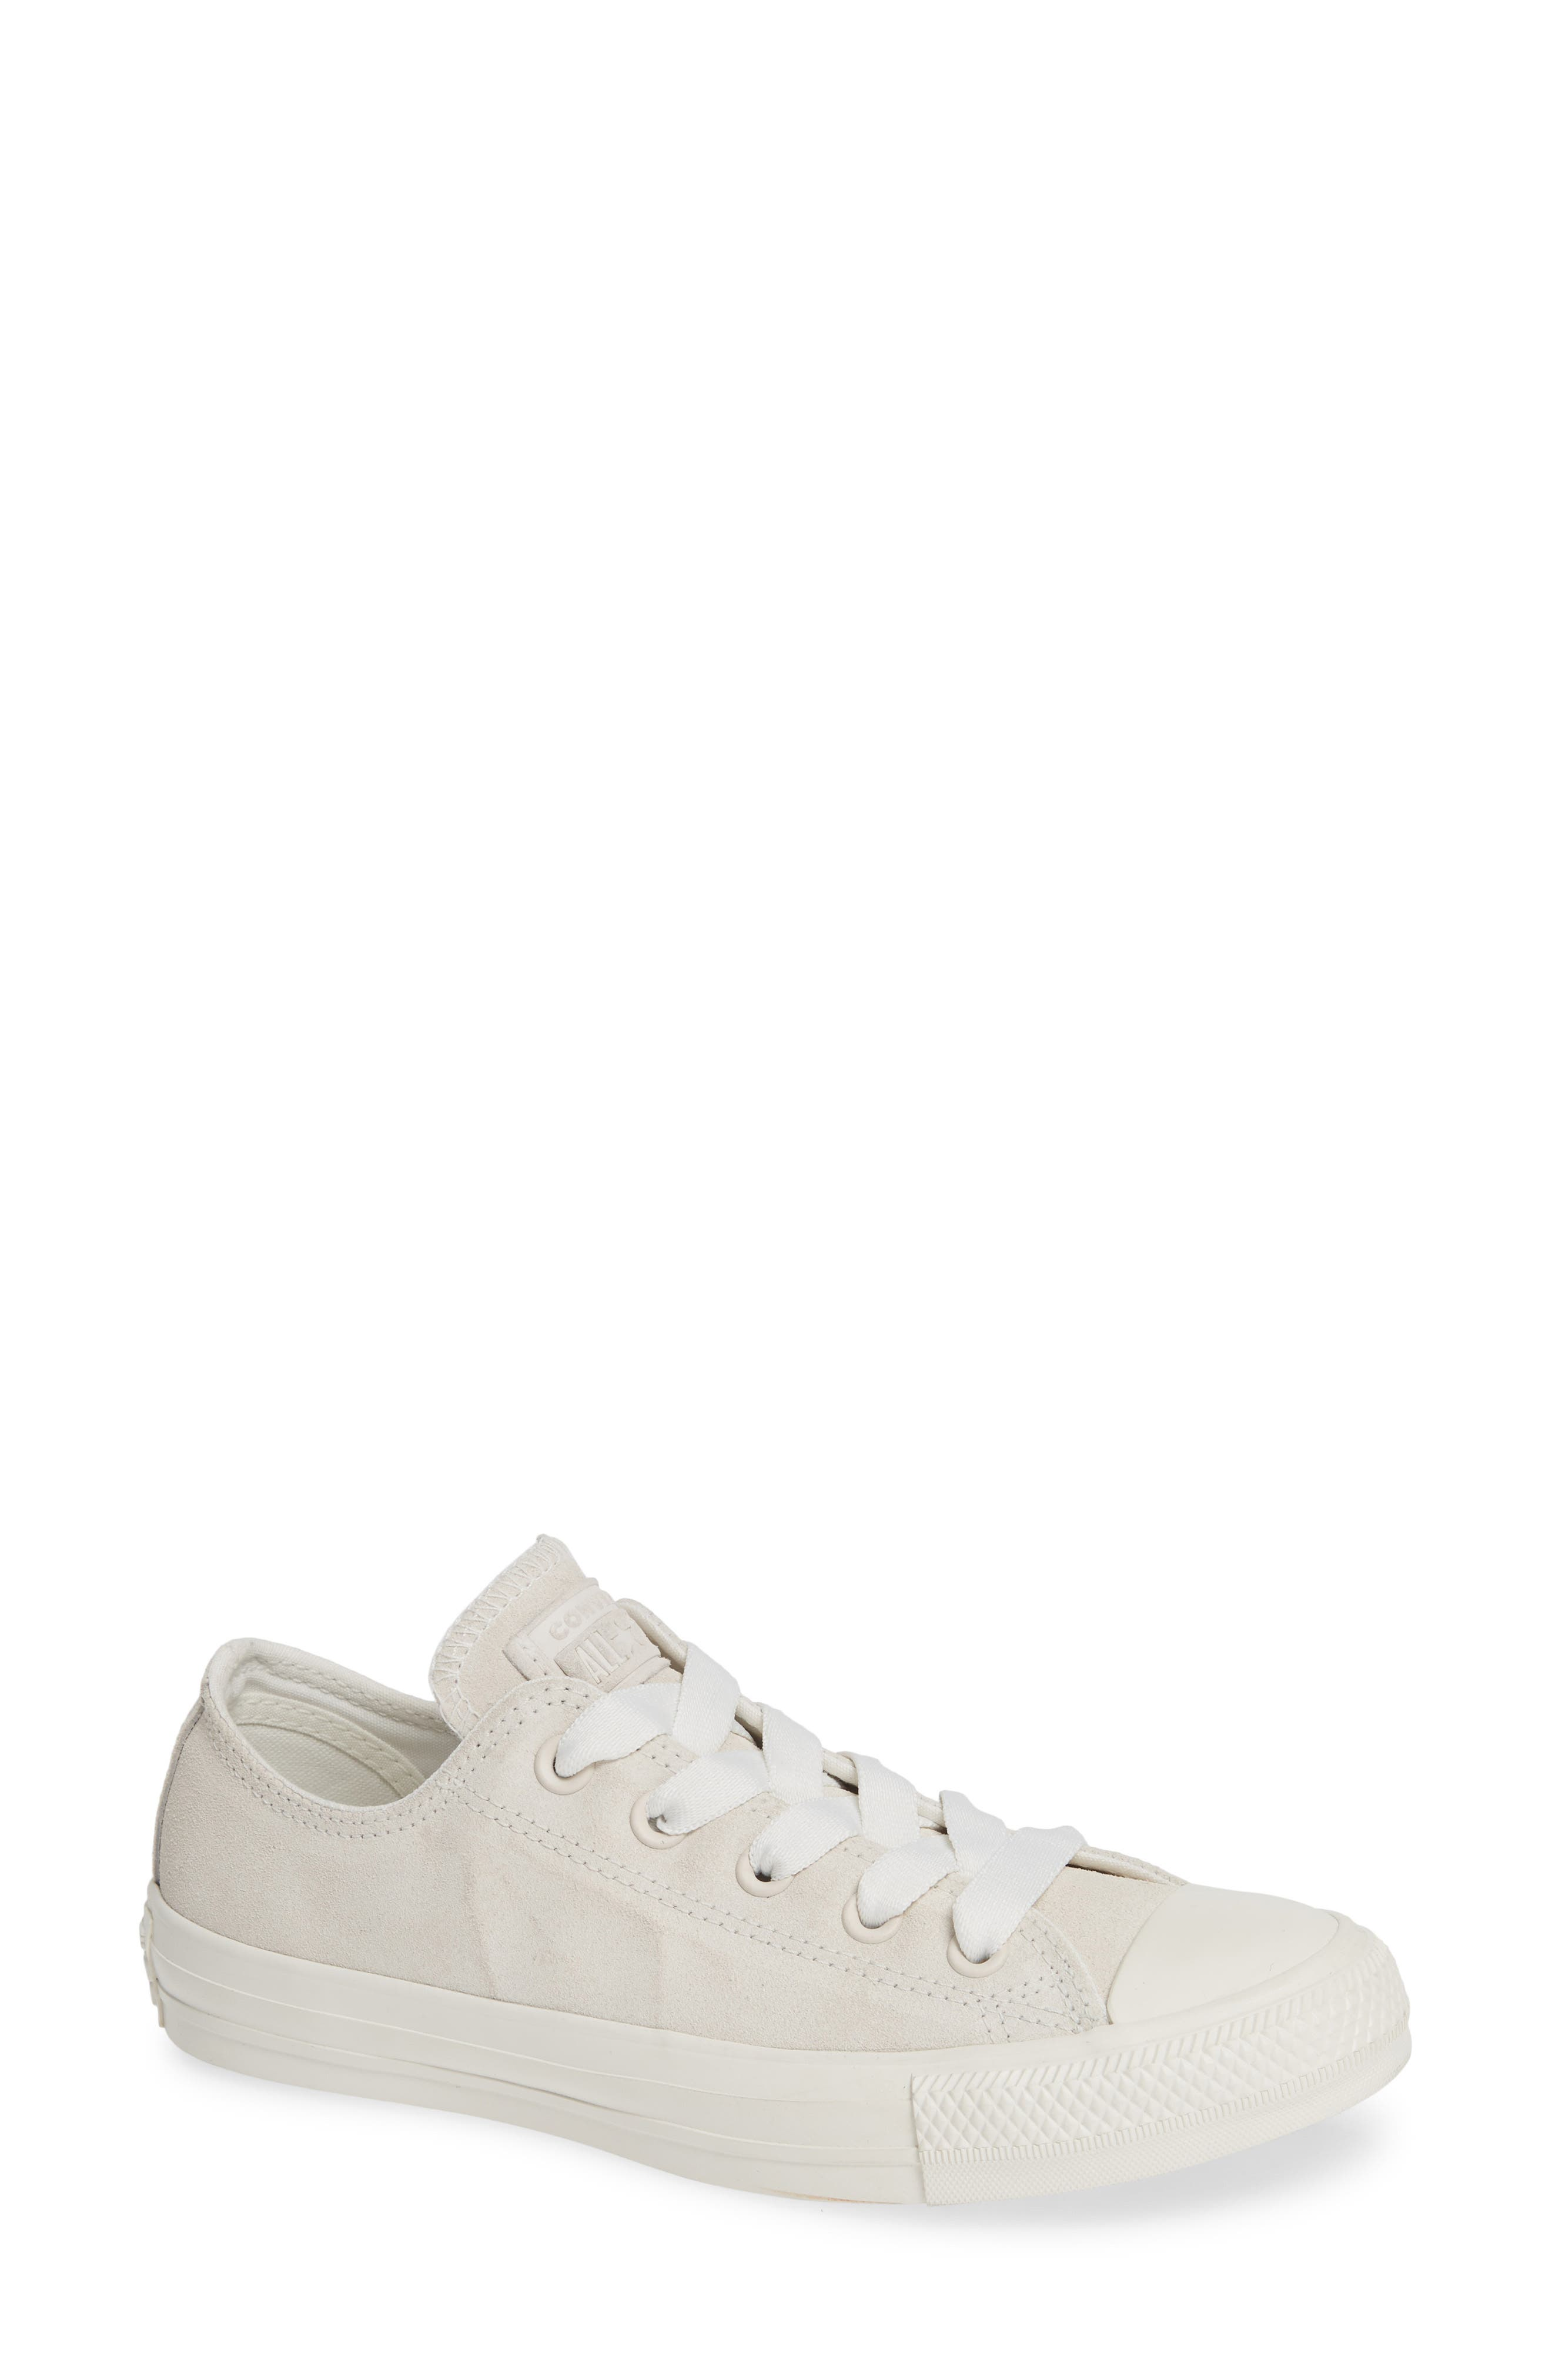 CONVERSE, Chuck Taylor<sup>®</sup> All Star<sup>®</sup> Ox Sneaker, Main thumbnail 1, color, VINTAGE WHITE SUEDE